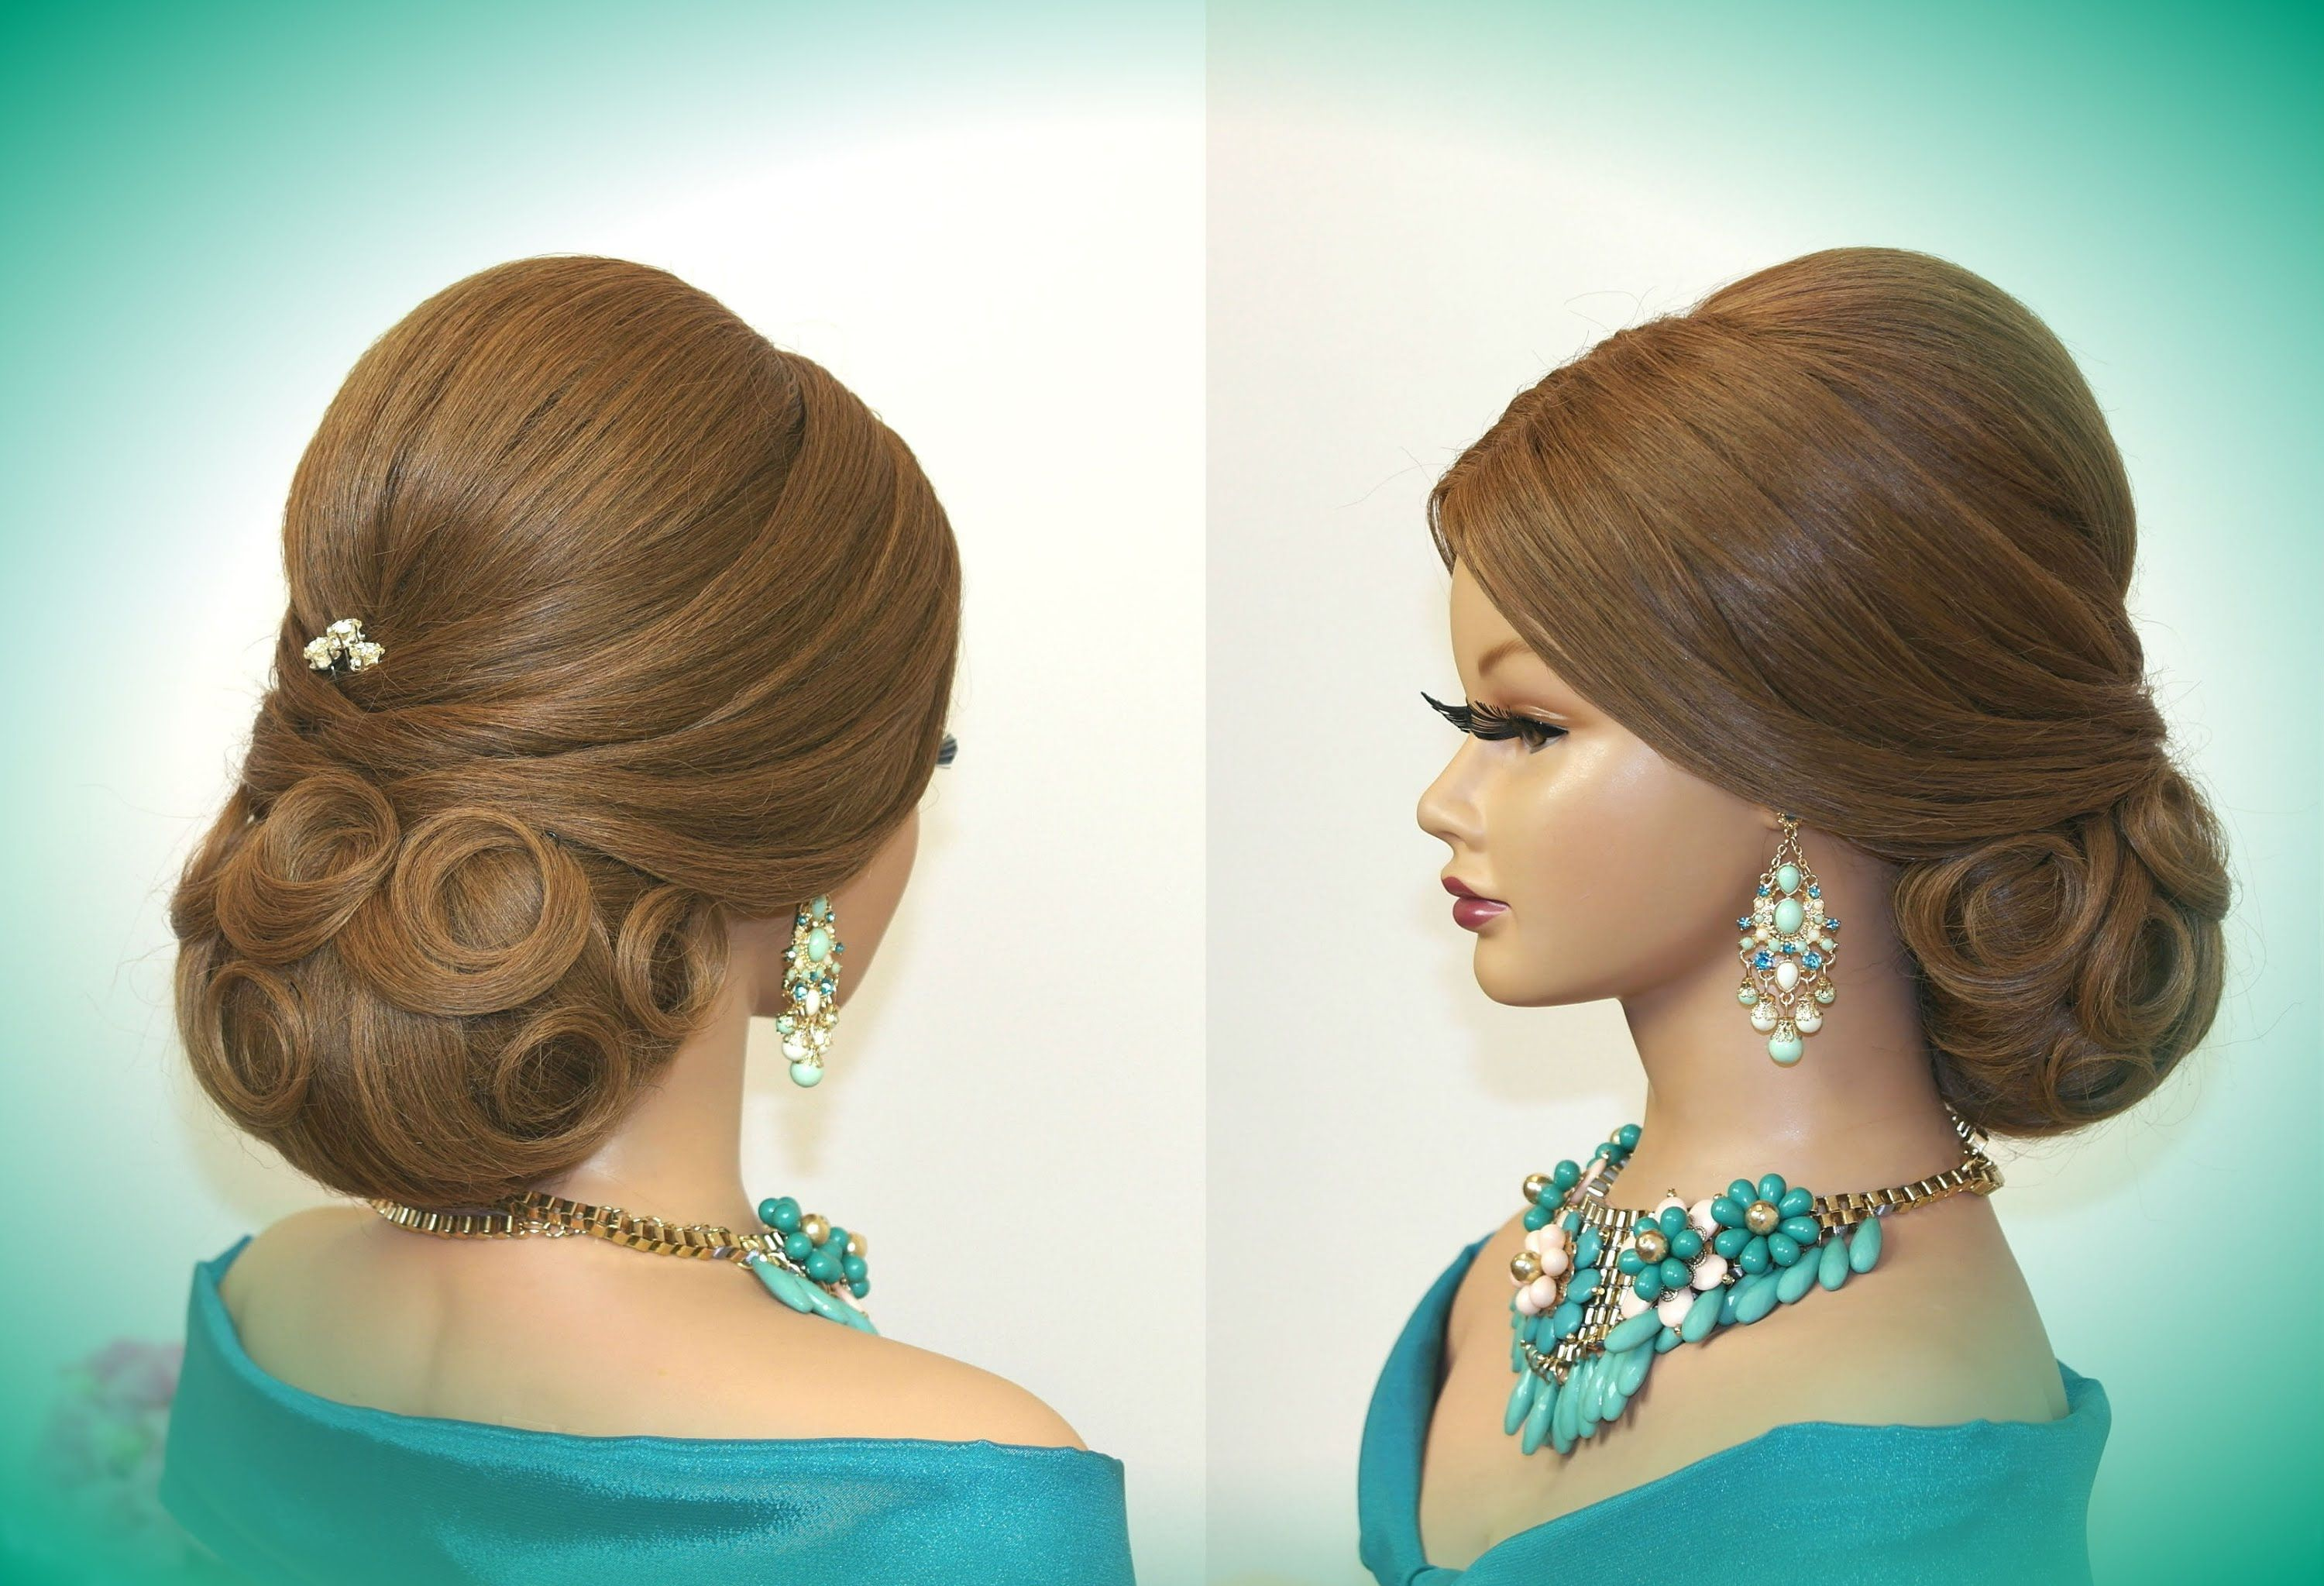 Wondrous 1000 Images About Hair Elegance On Pinterest Updo Wedding And Short Hairstyles Gunalazisus